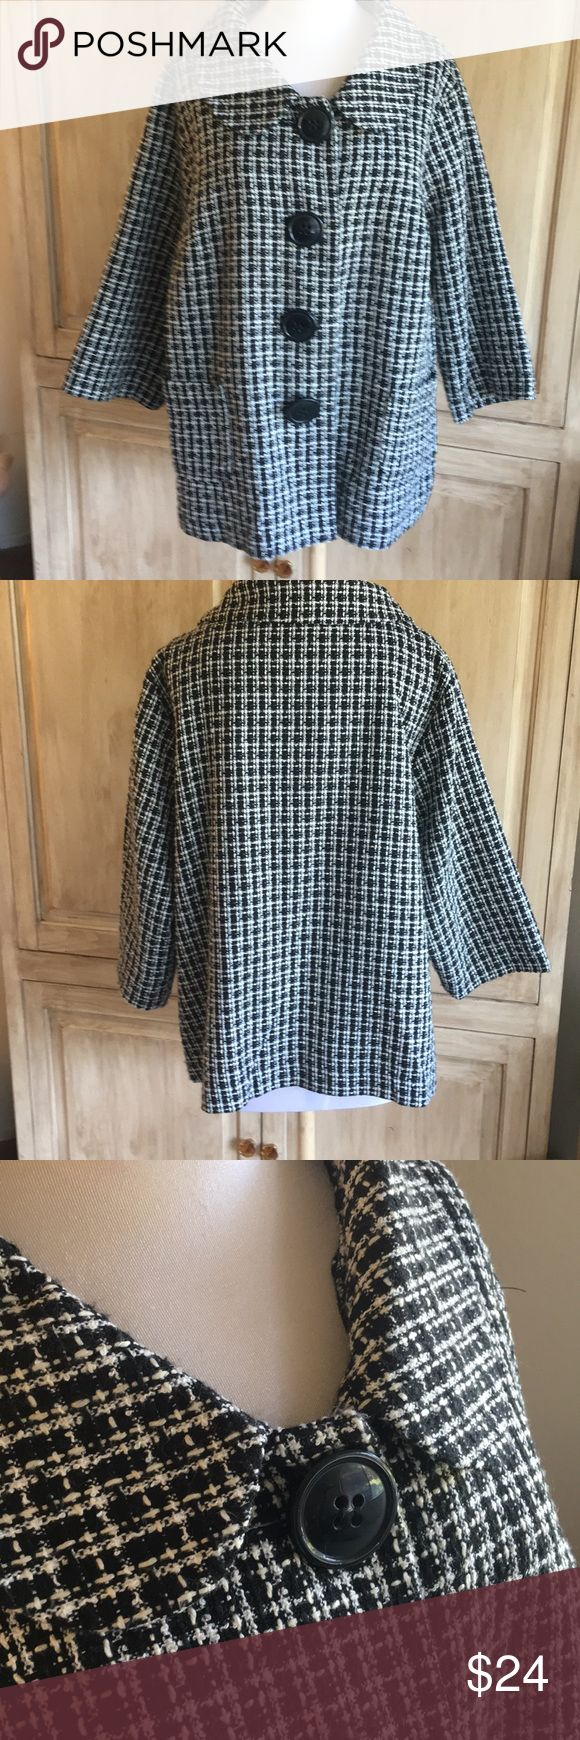 "Avenue Houndstooth like Ball/Wht Jacket Sz 18/20 Super cute light weight jacket with 3/4"" sleeves and great with jeans or over a skirt... measures 24.5"" pit to pit and 28"" in length. Avenue Jackets & Coats Blazers"